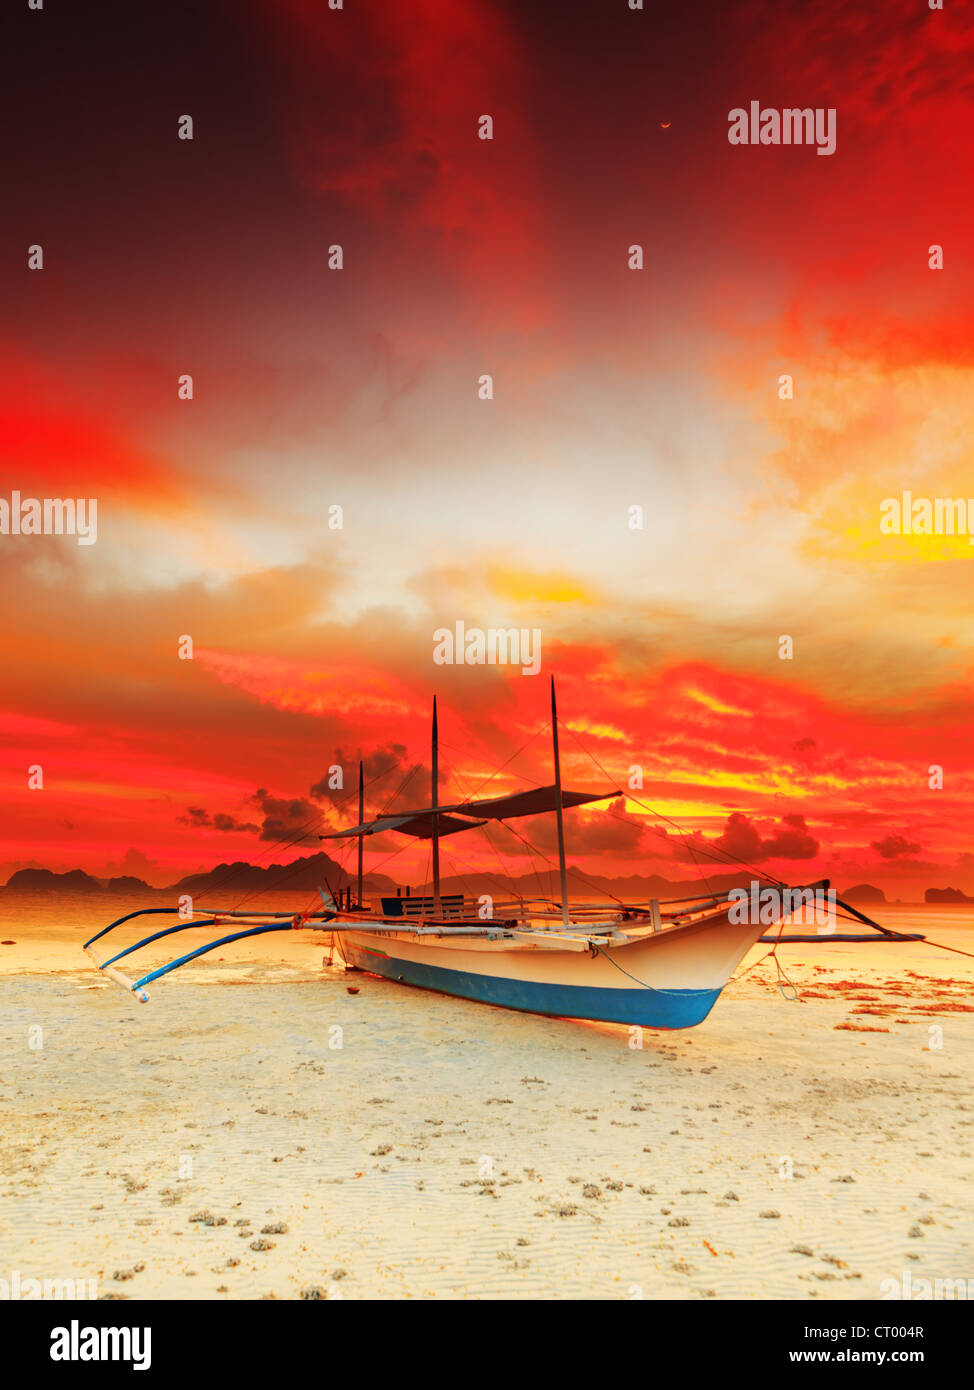 Traditional philippine boat bangka at sunset time - Stock Image